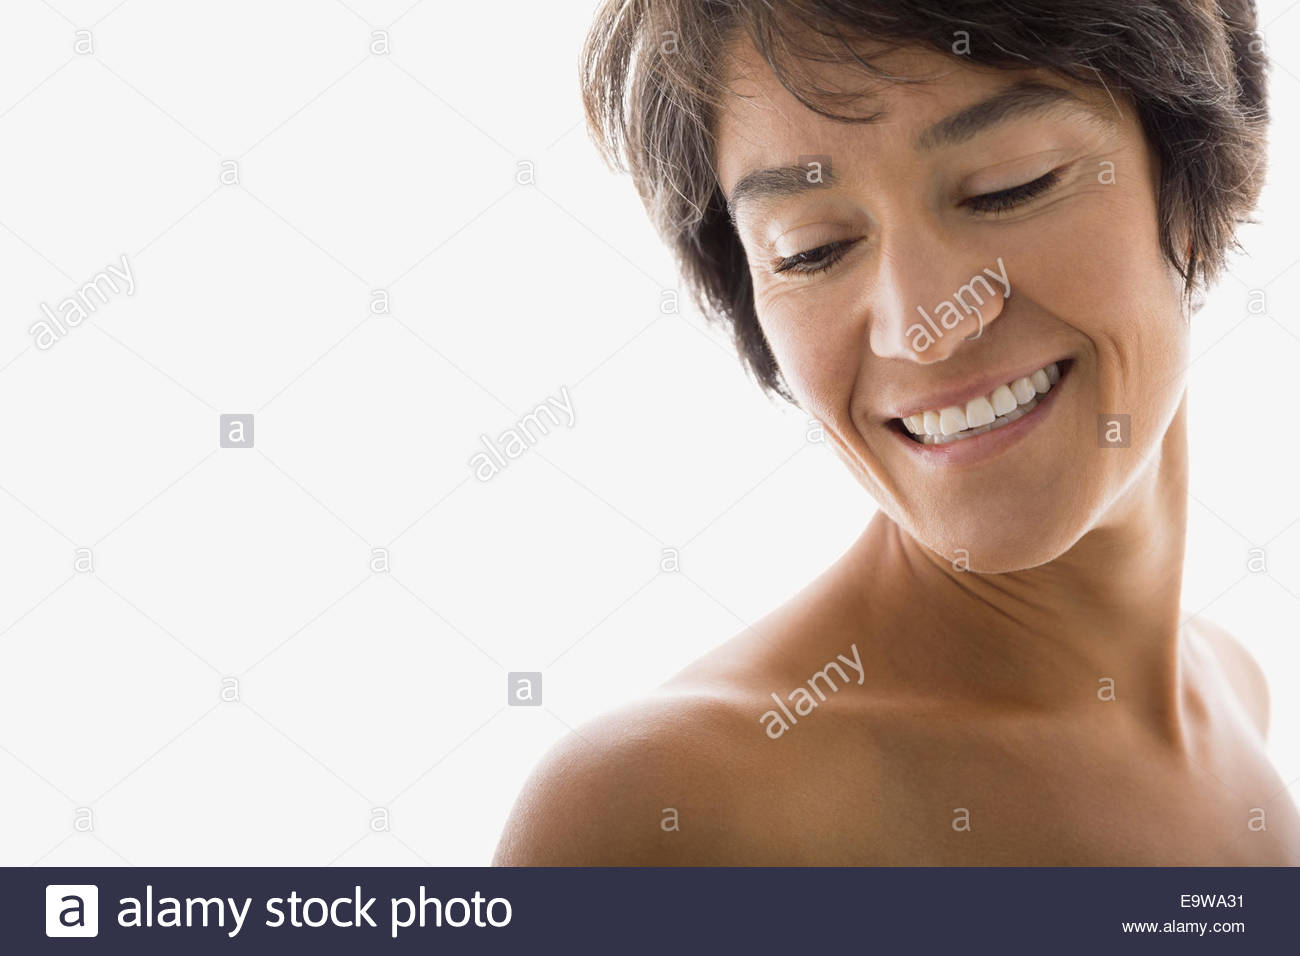 Smiling woman with bare chest looking down - Stock Image